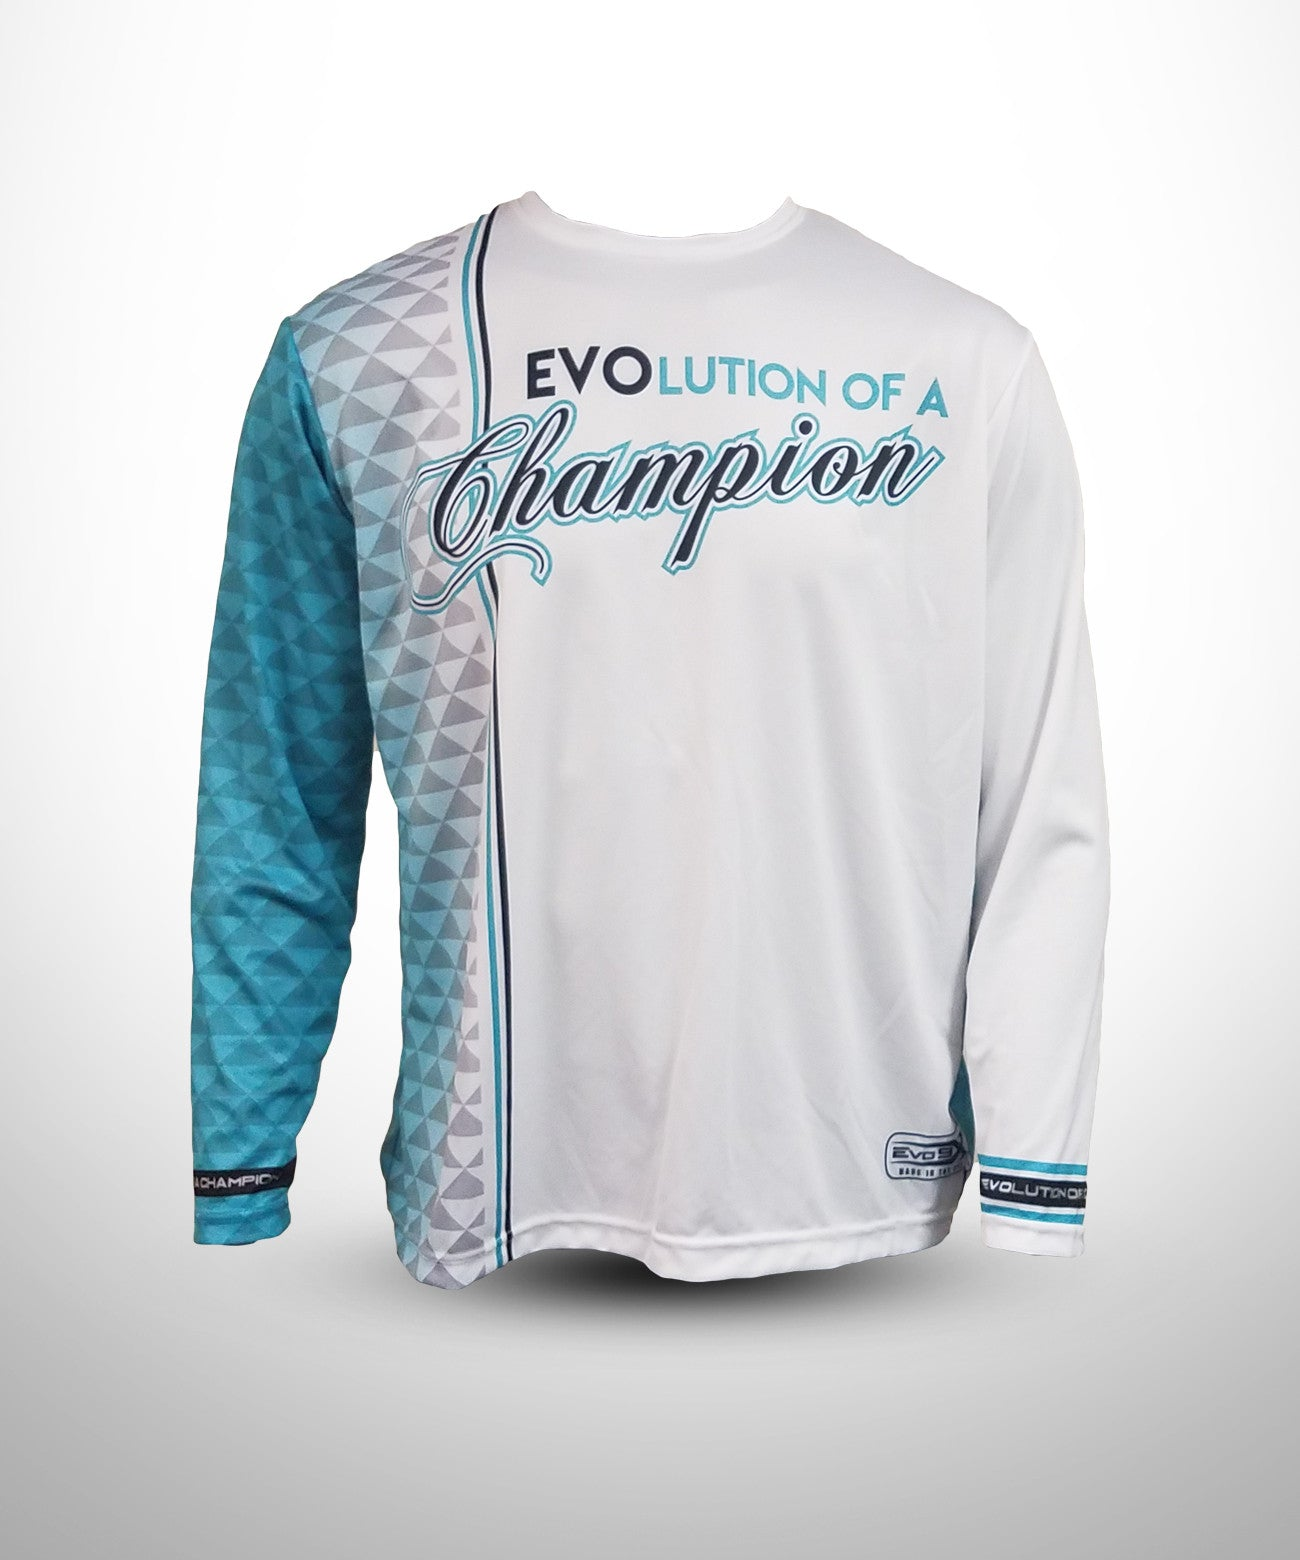 a389c09f Full dye sublimated Long sleeve jersey - Evolution Of a Champion ...